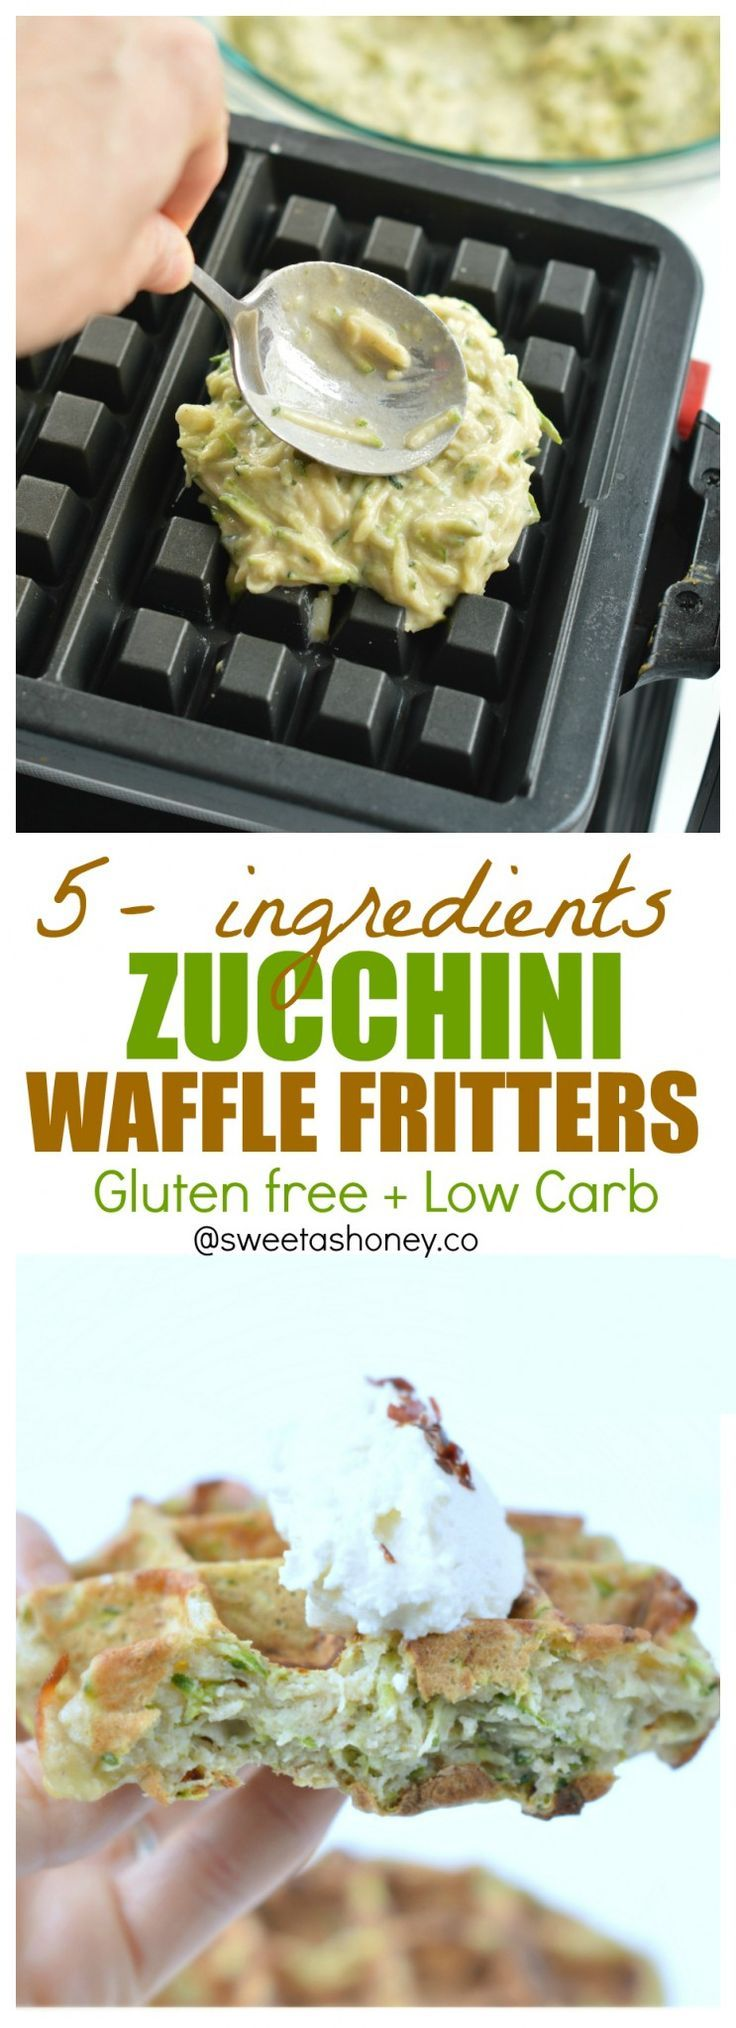 Zucchini waffles, a great way to makes kids eat veggie! A simple make-ahead and freezable zucchini waffle fritter recipe. Gluten free, low carb (